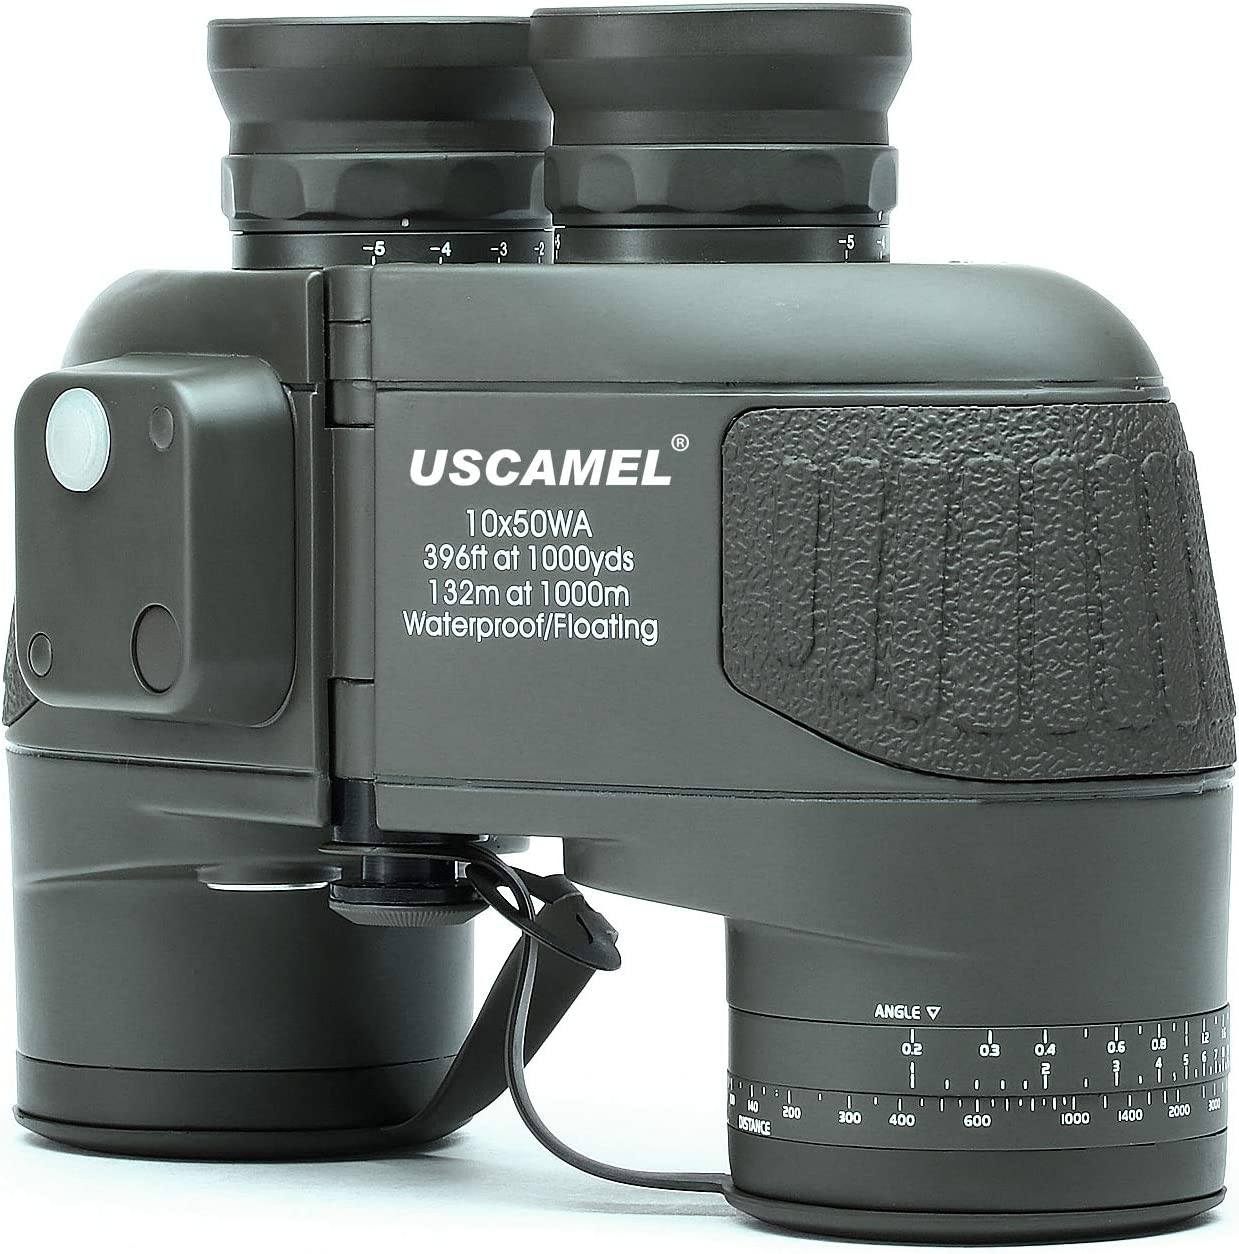 Best rangefinder binoculars: USCAMEL 10x50 Military Waterproof HD